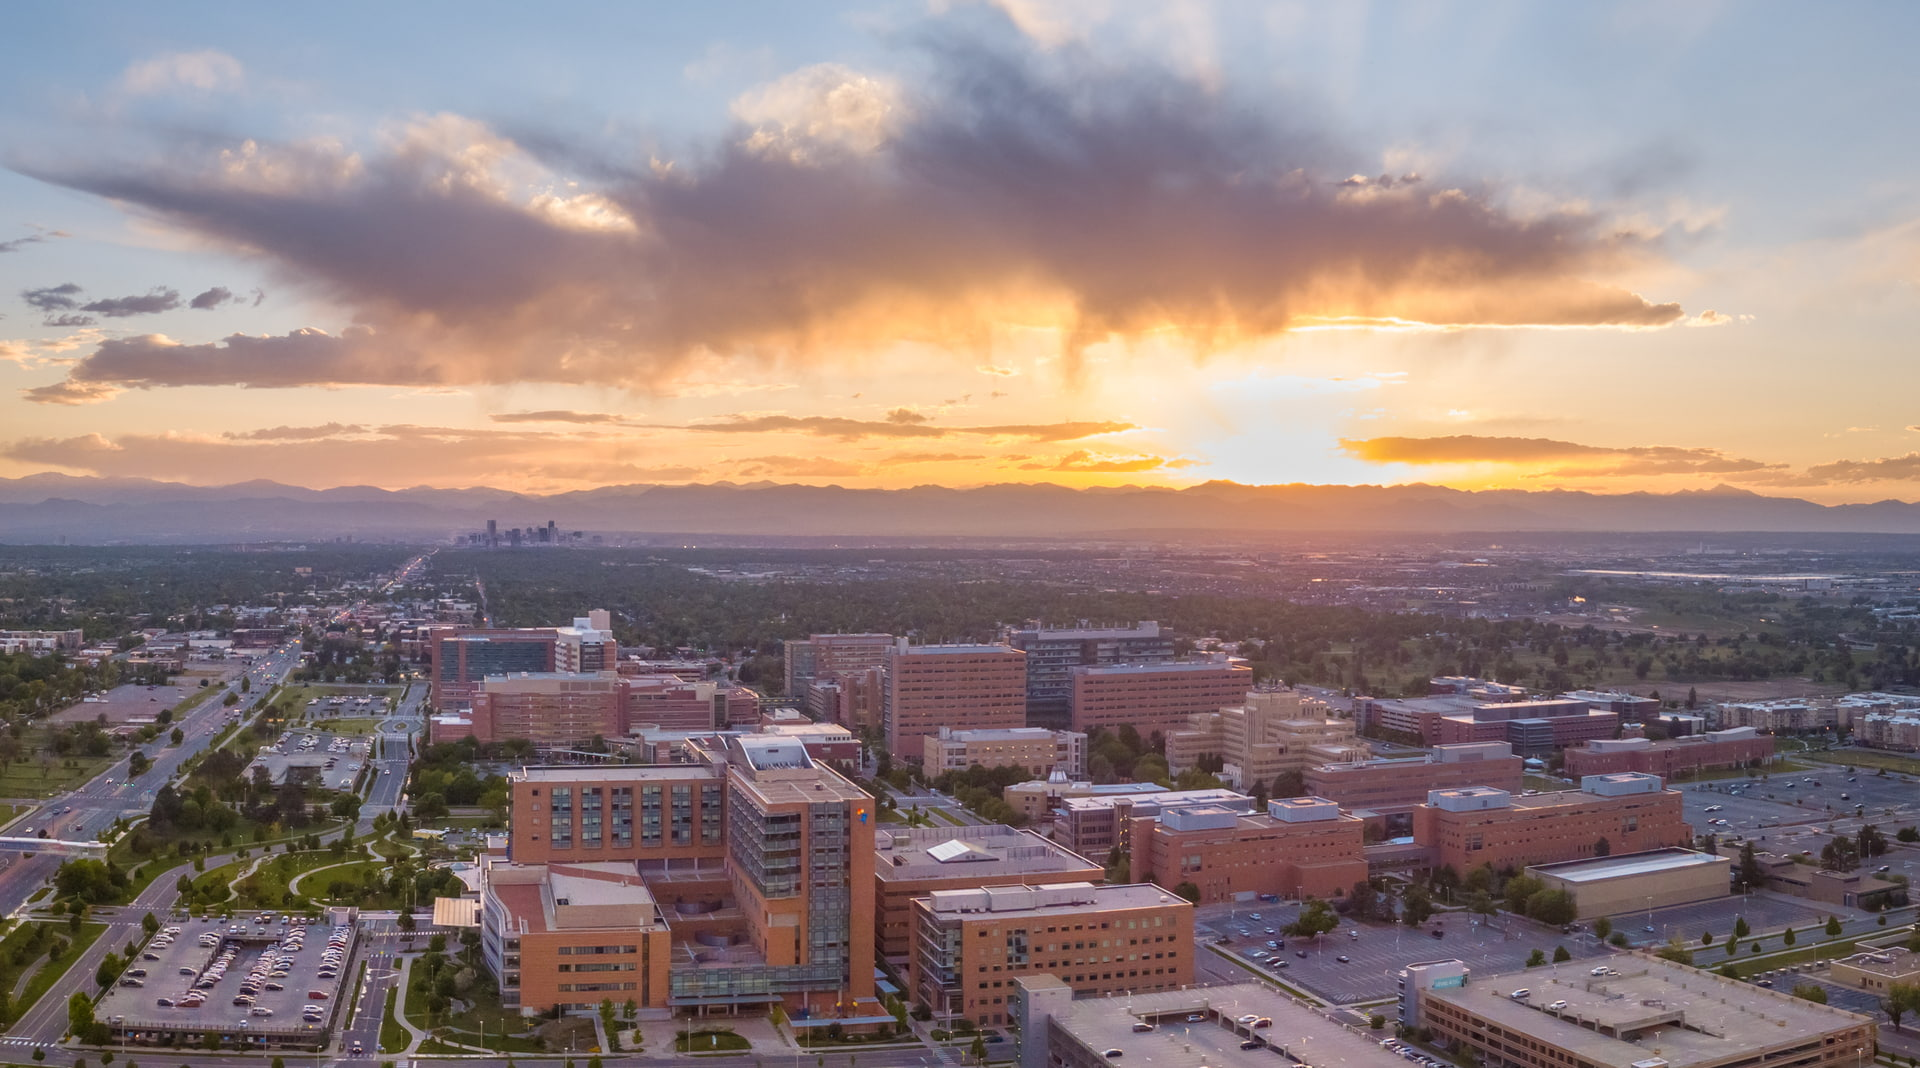 Anschutz campus birds-eye view